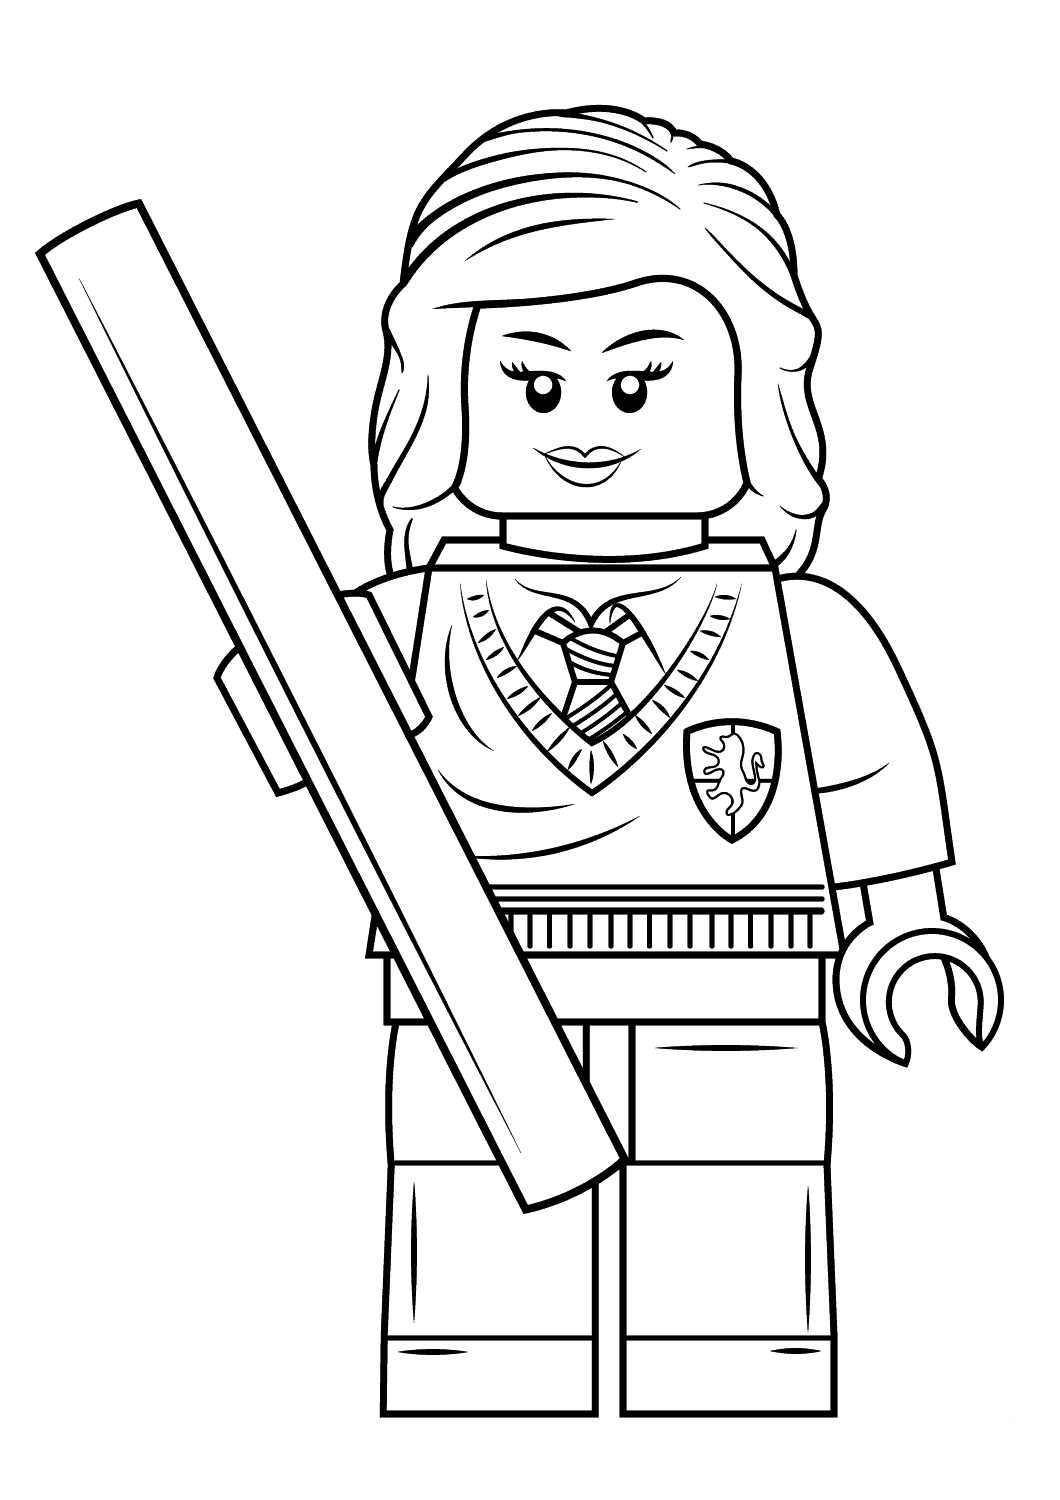 Lego Harry Potter Hermione Granger Coloring Page